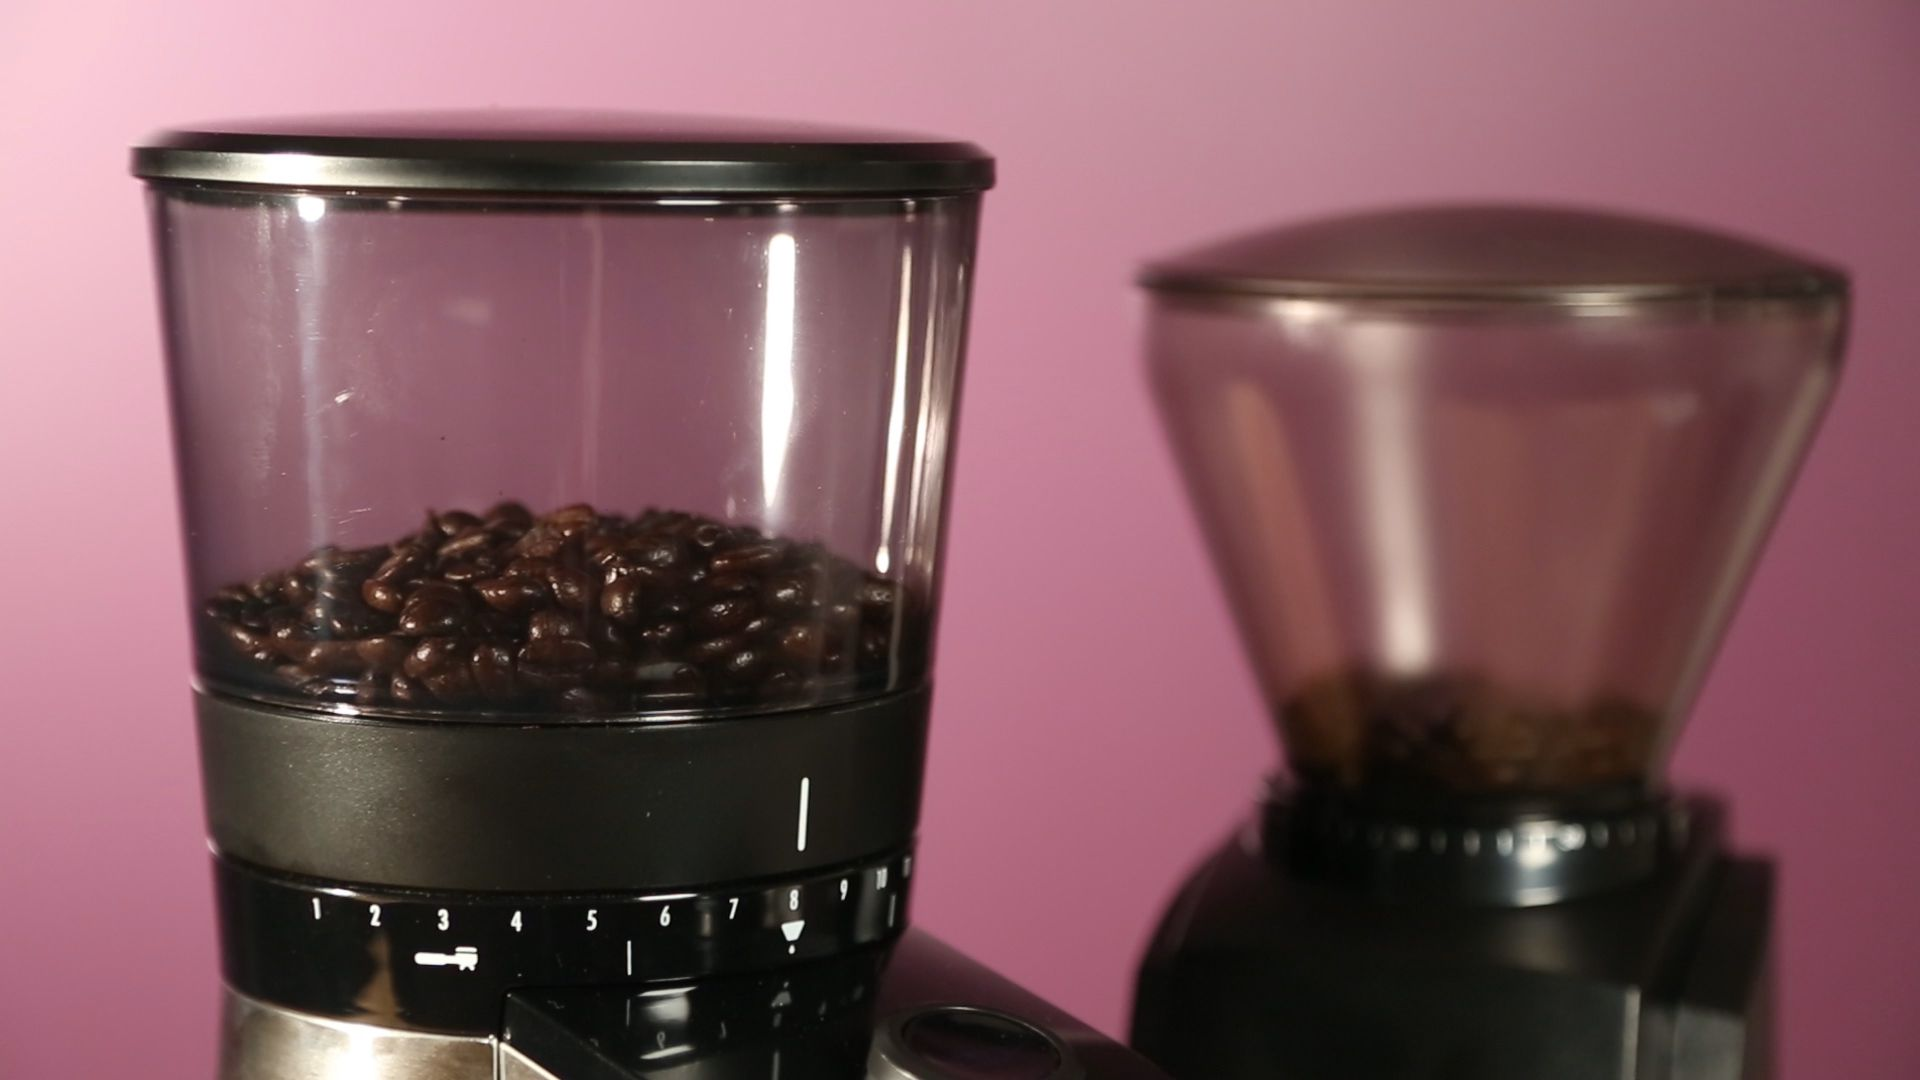 The best coffee grinder you can buy right now